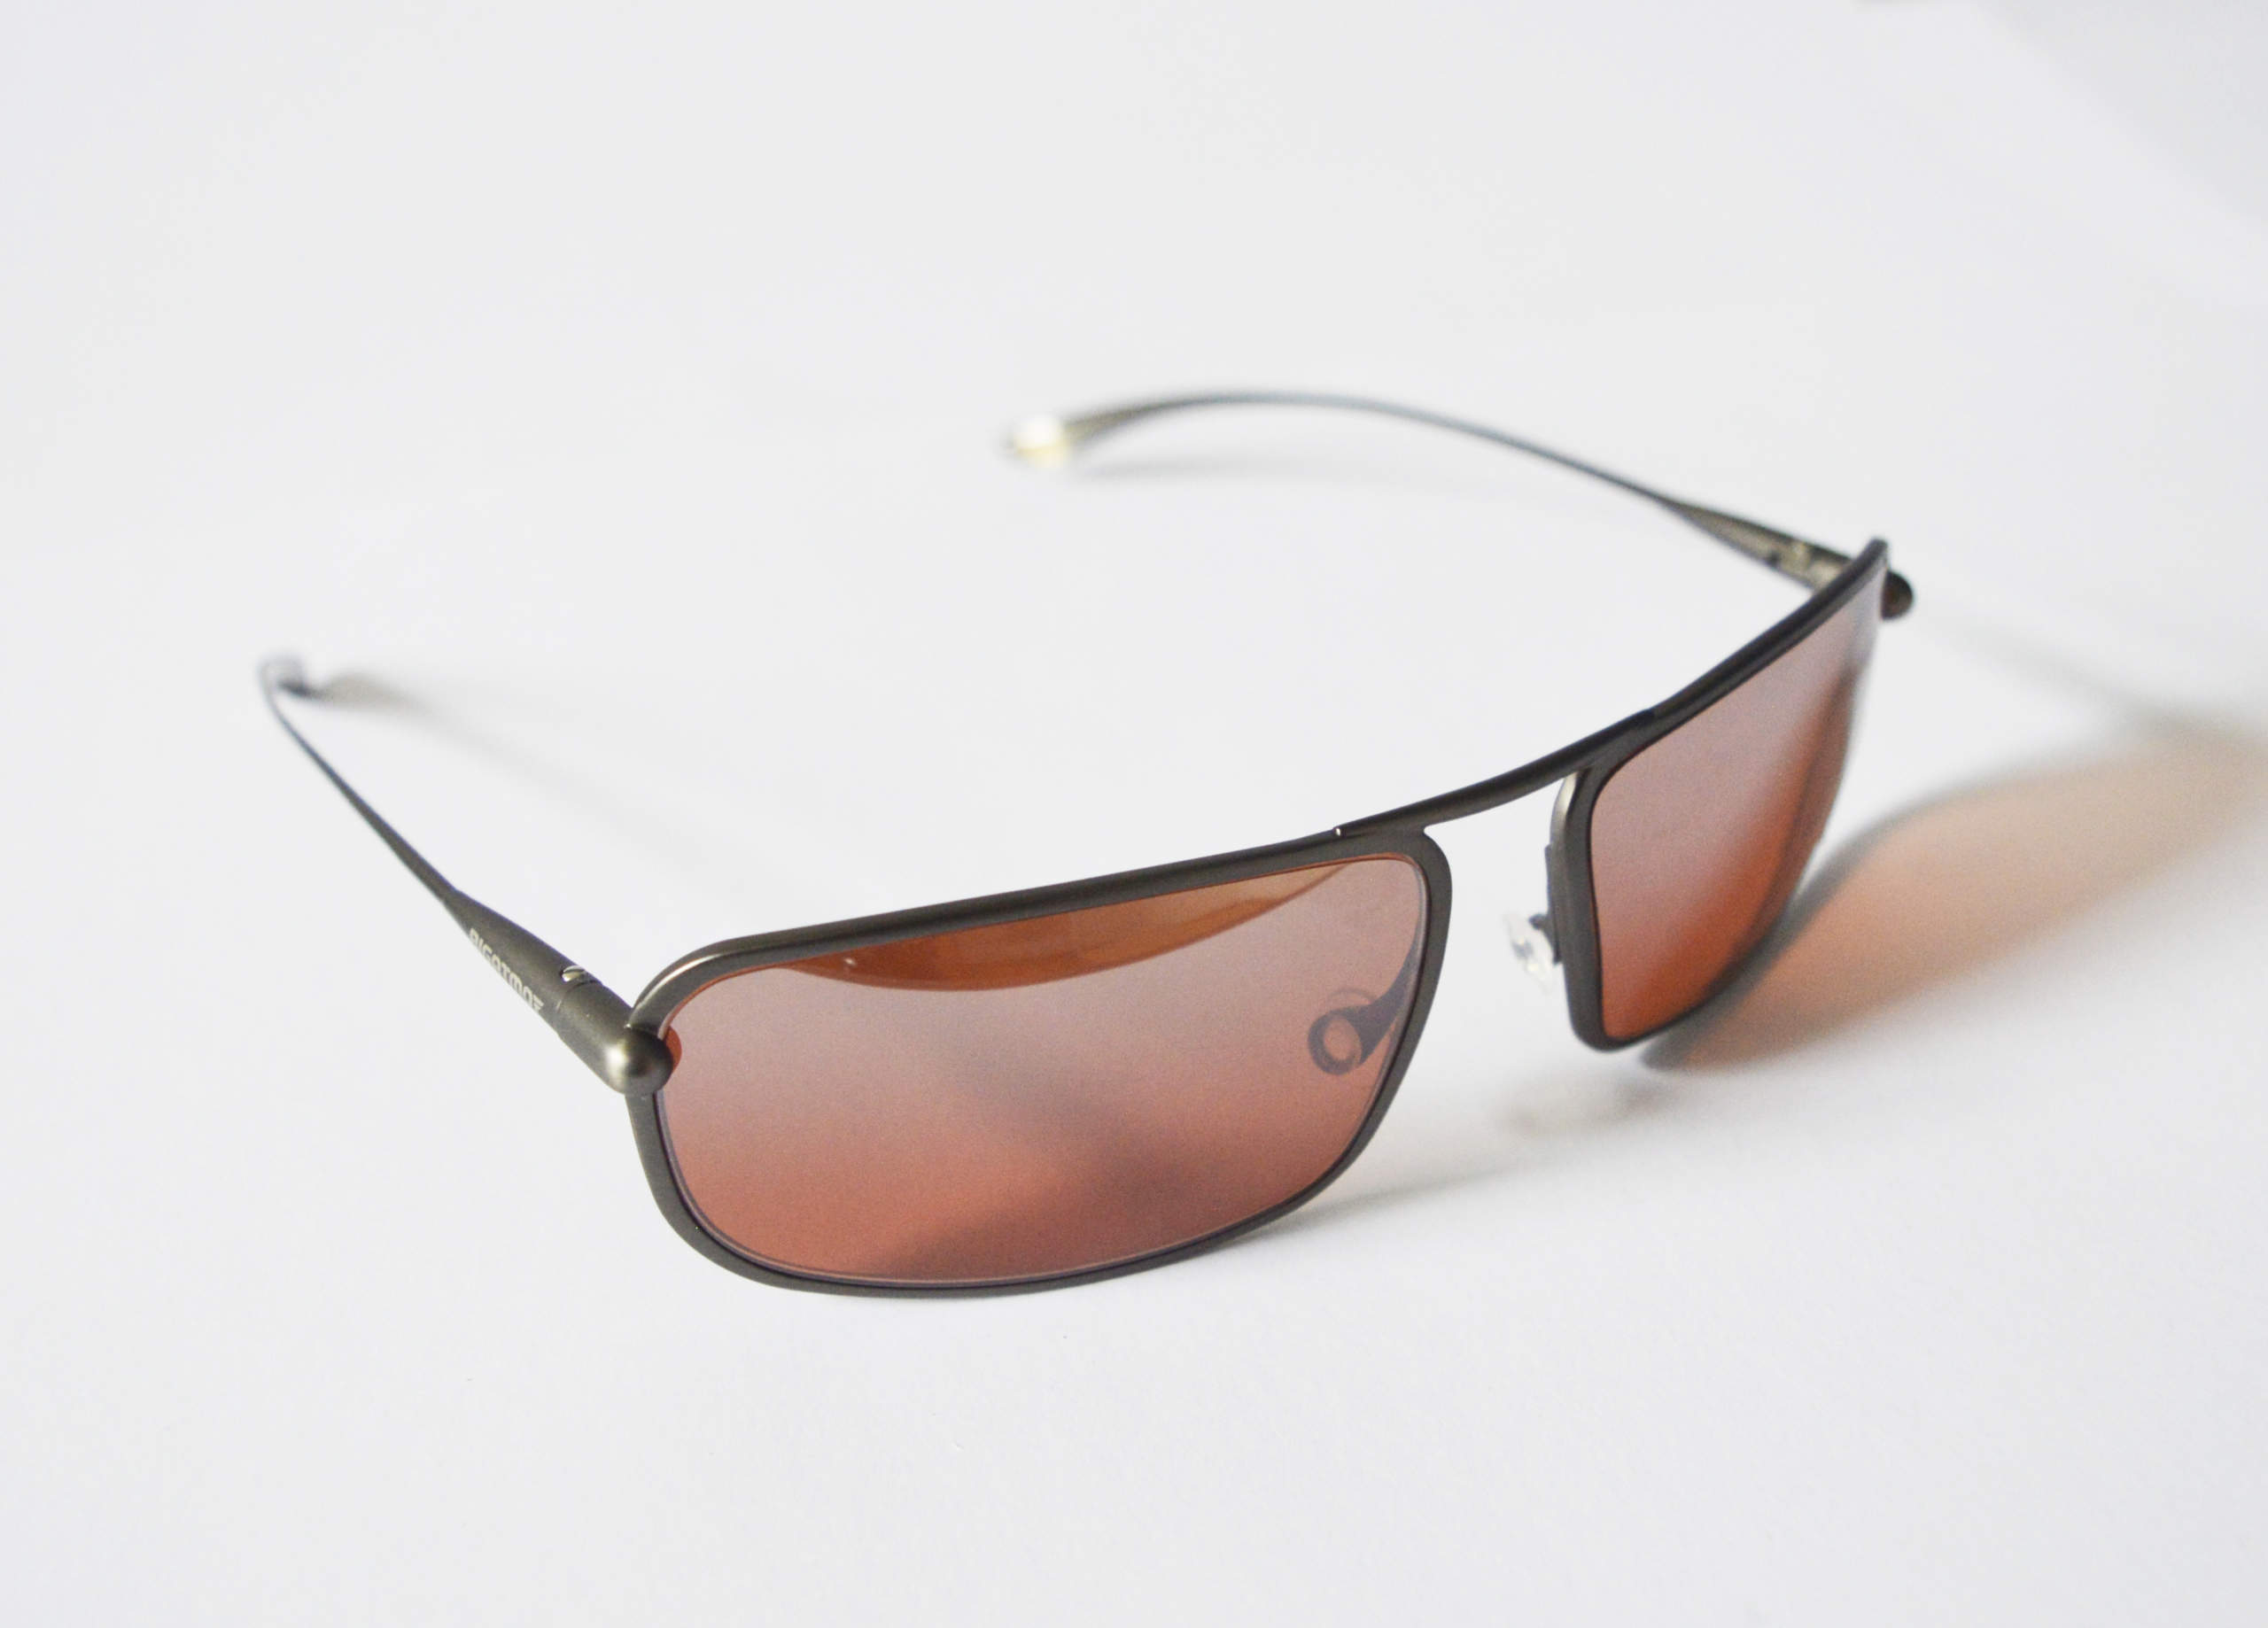 Meso - Gunmetal Titanium Frame Light Silver Gradient Mirror Photochromic Sunglasses